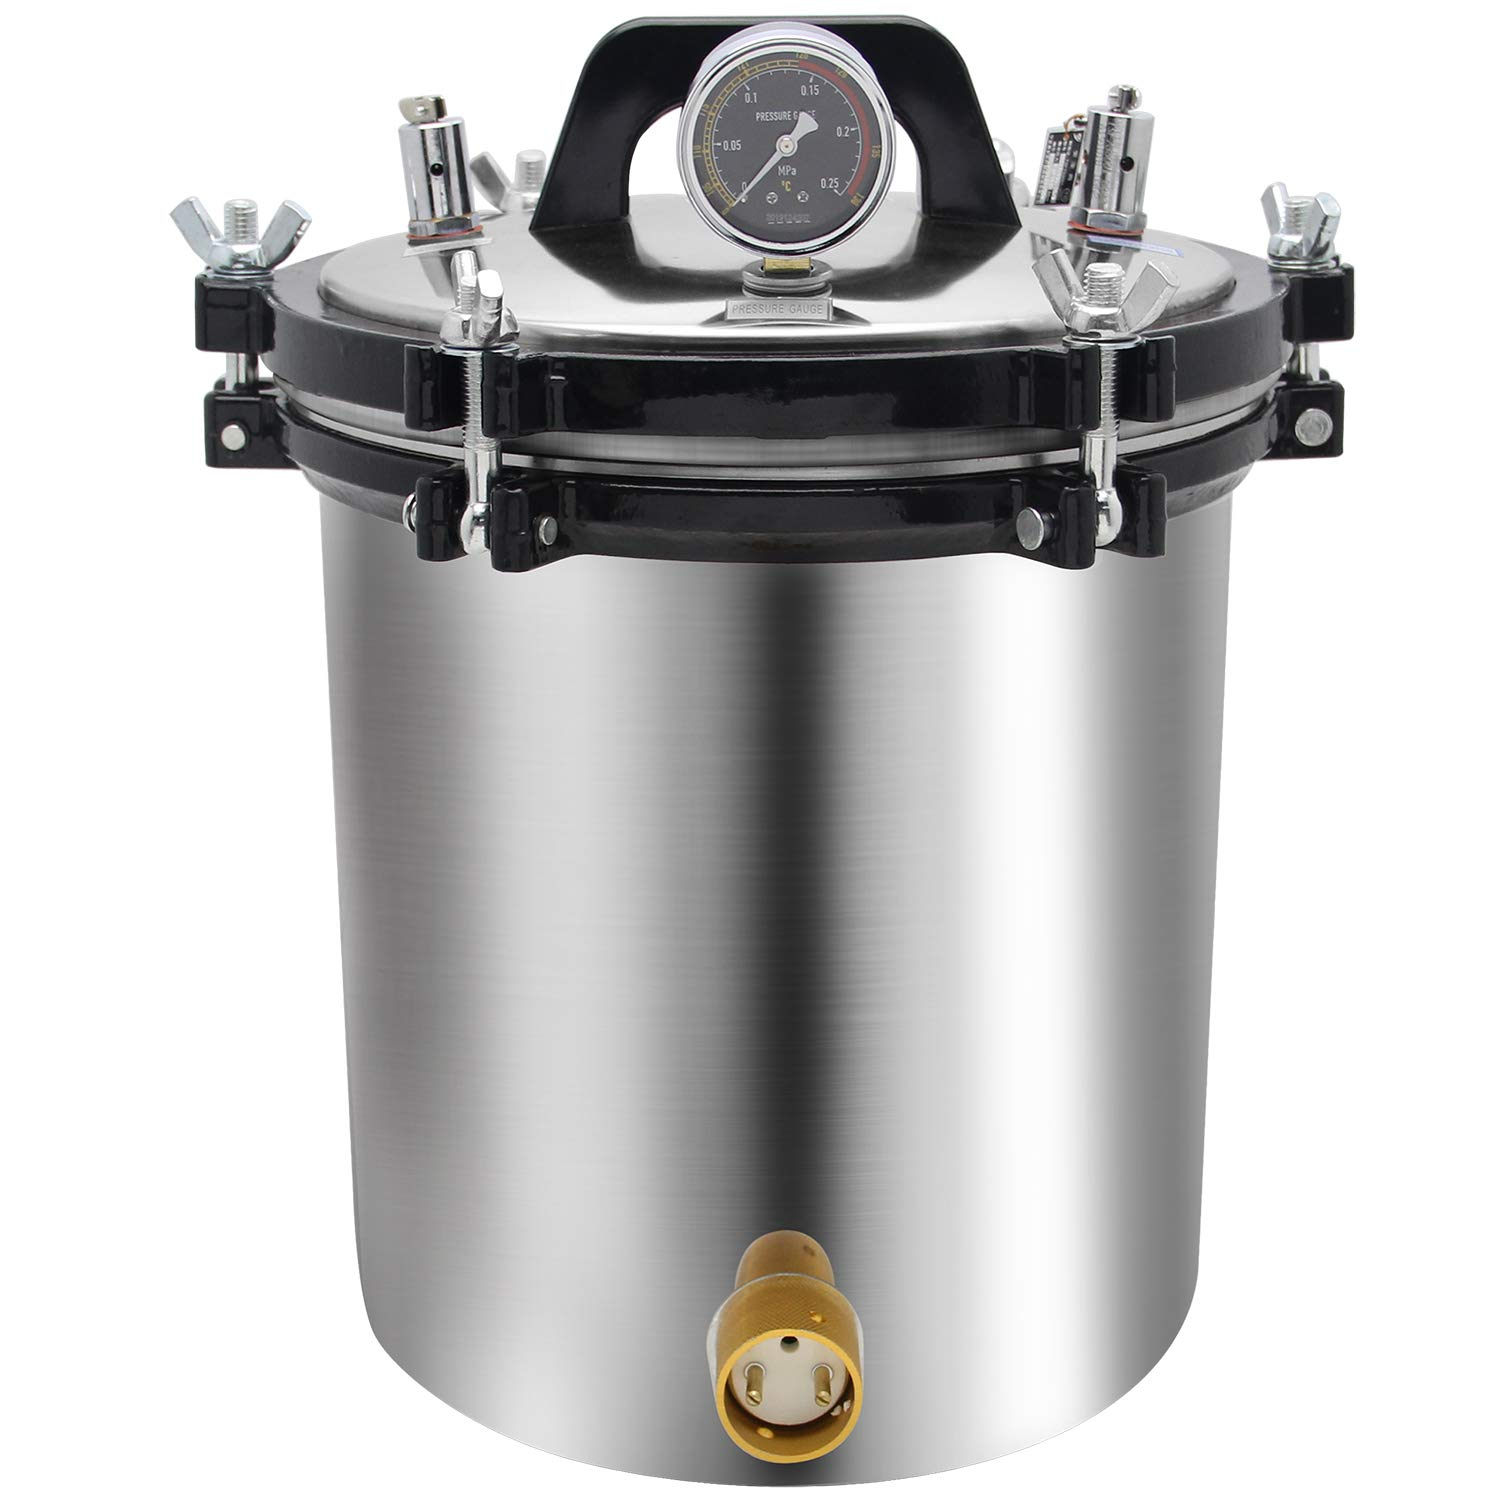 BAOSHISHAN 18L Steam Autoclave 4.7 Gallon Steam Lab Autoclave Coal and Electric Heating System Available High Pressure Autoclave 110V (18L)